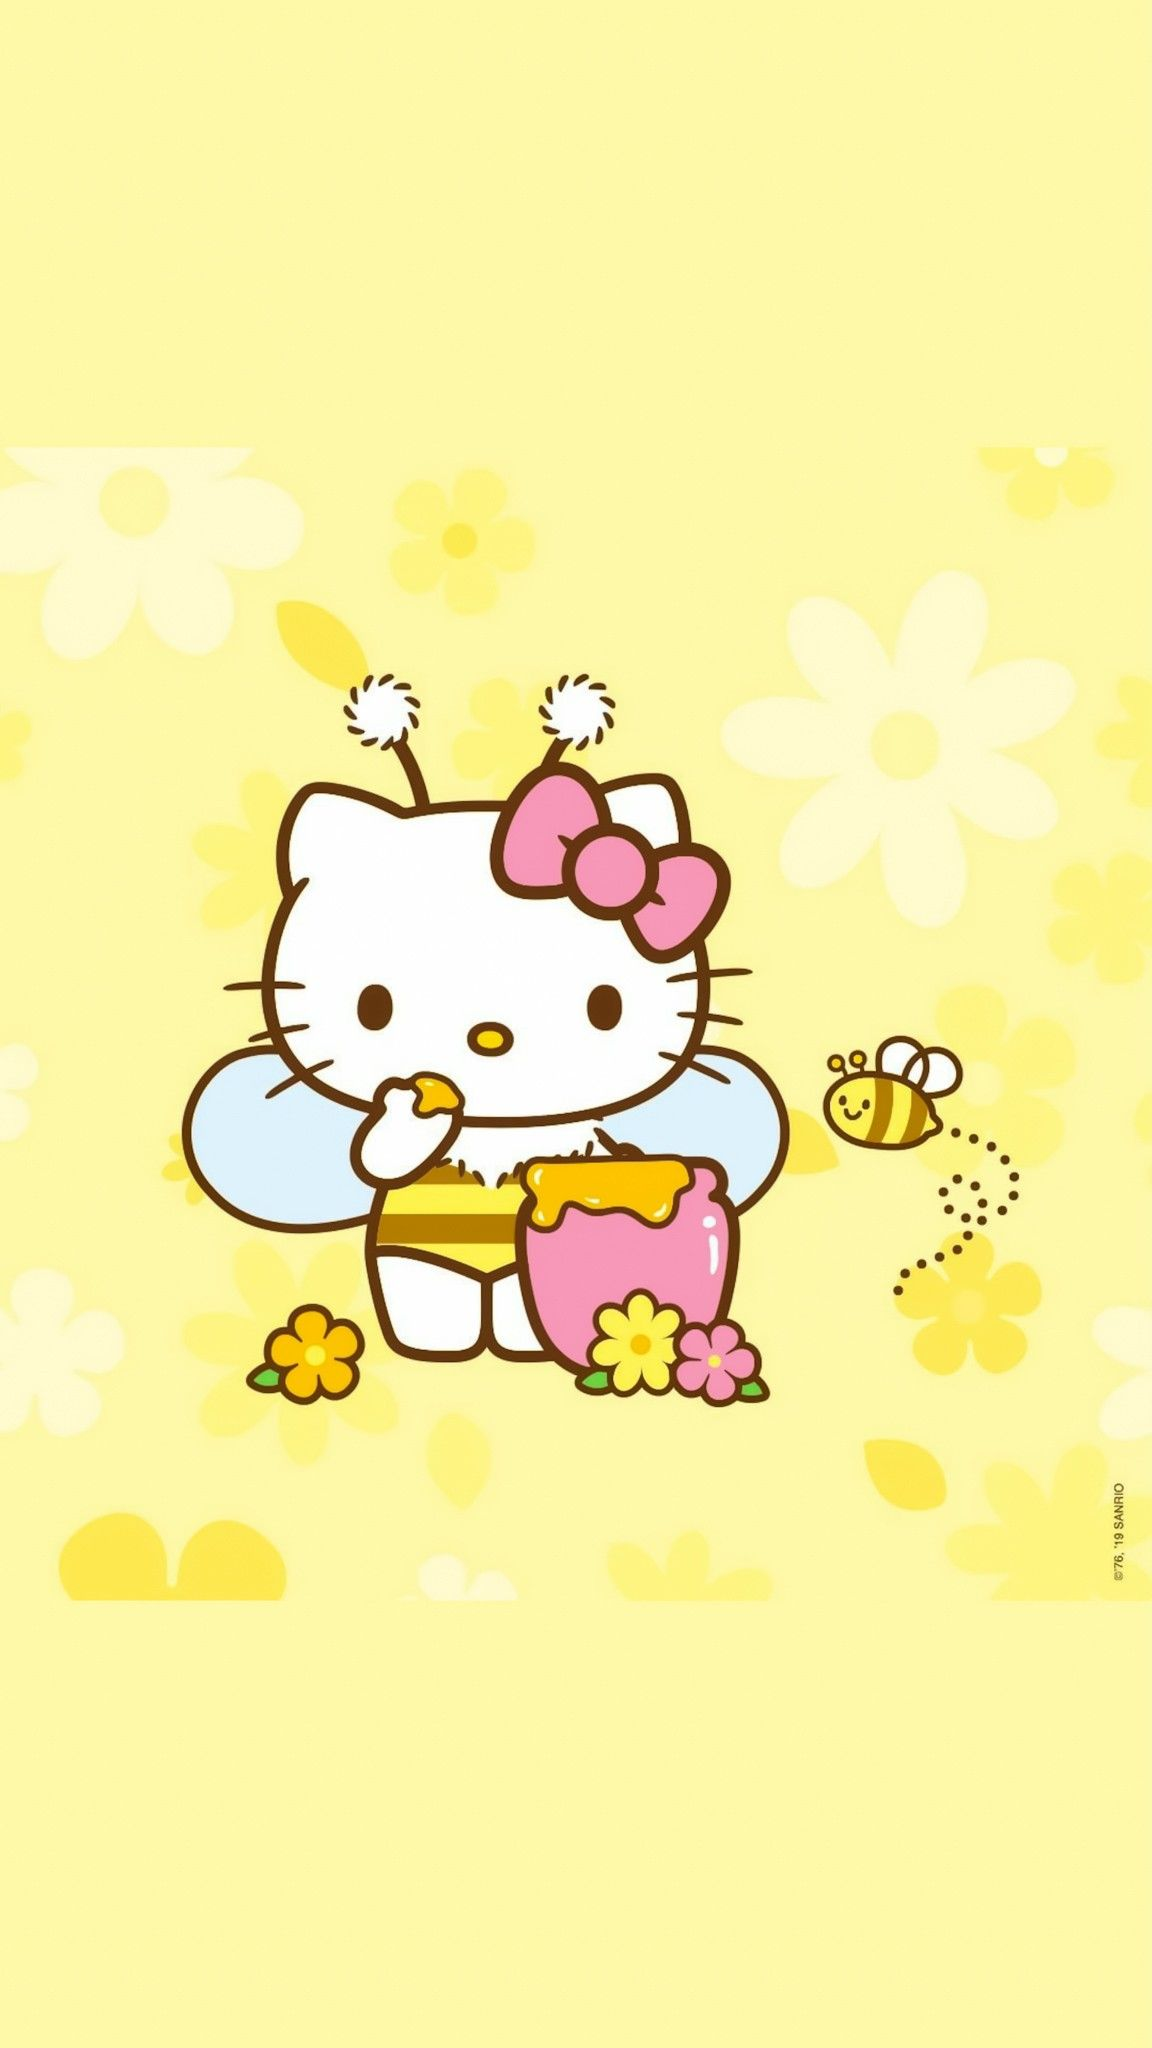 Pin By Laura Tolosa On Hello Kitty Bg S In 2020 Hello Kitty Pictures Hello Kitty Images Hello Kitty Wallpaper